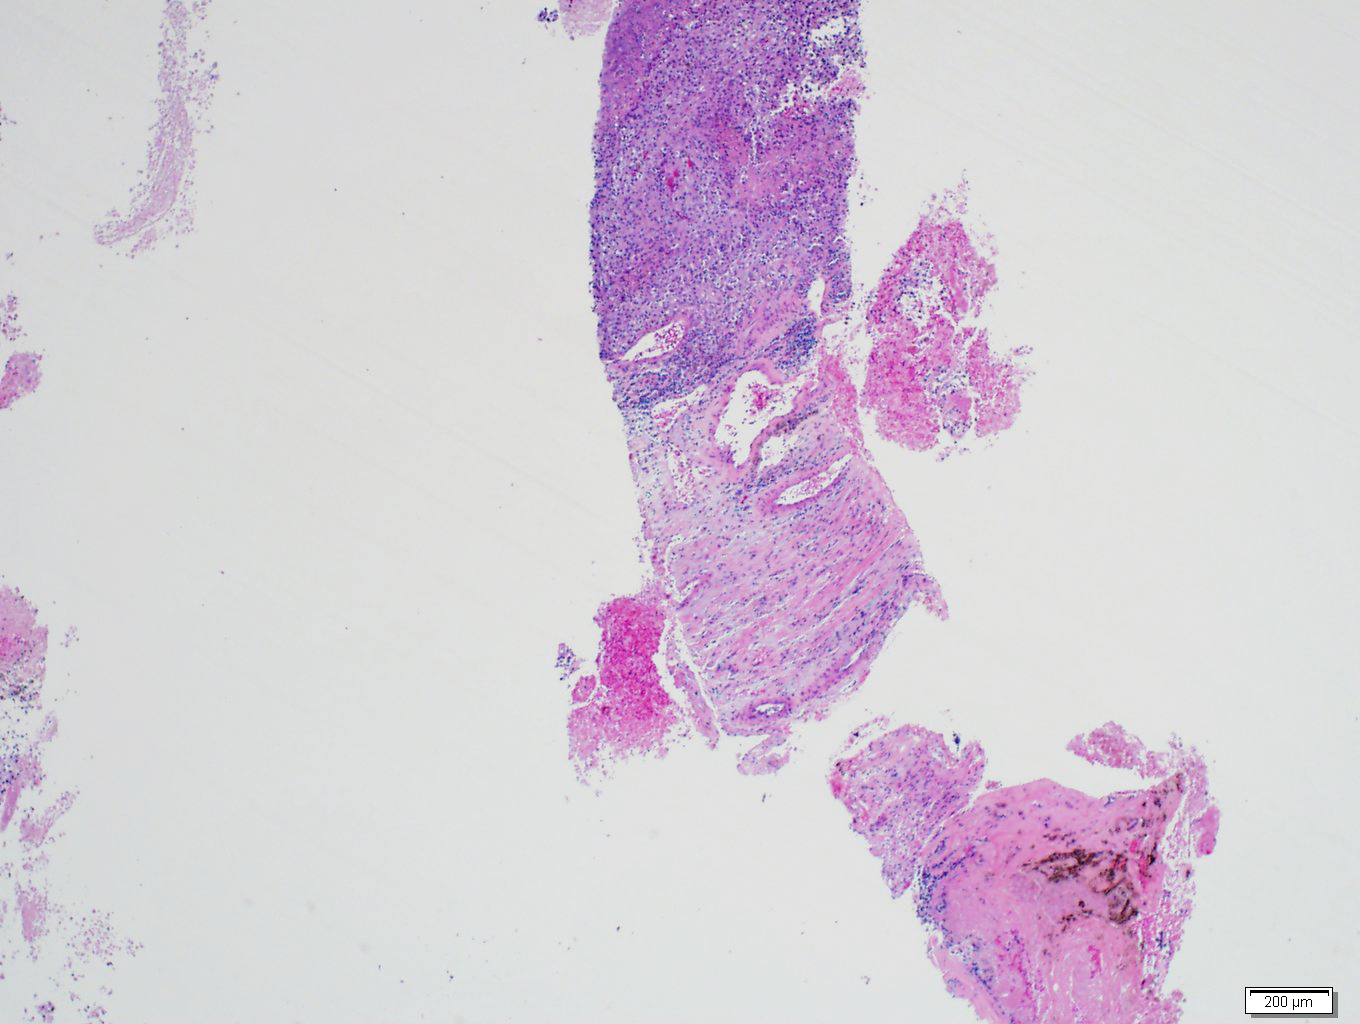 Adrenal metastasis from melanoma